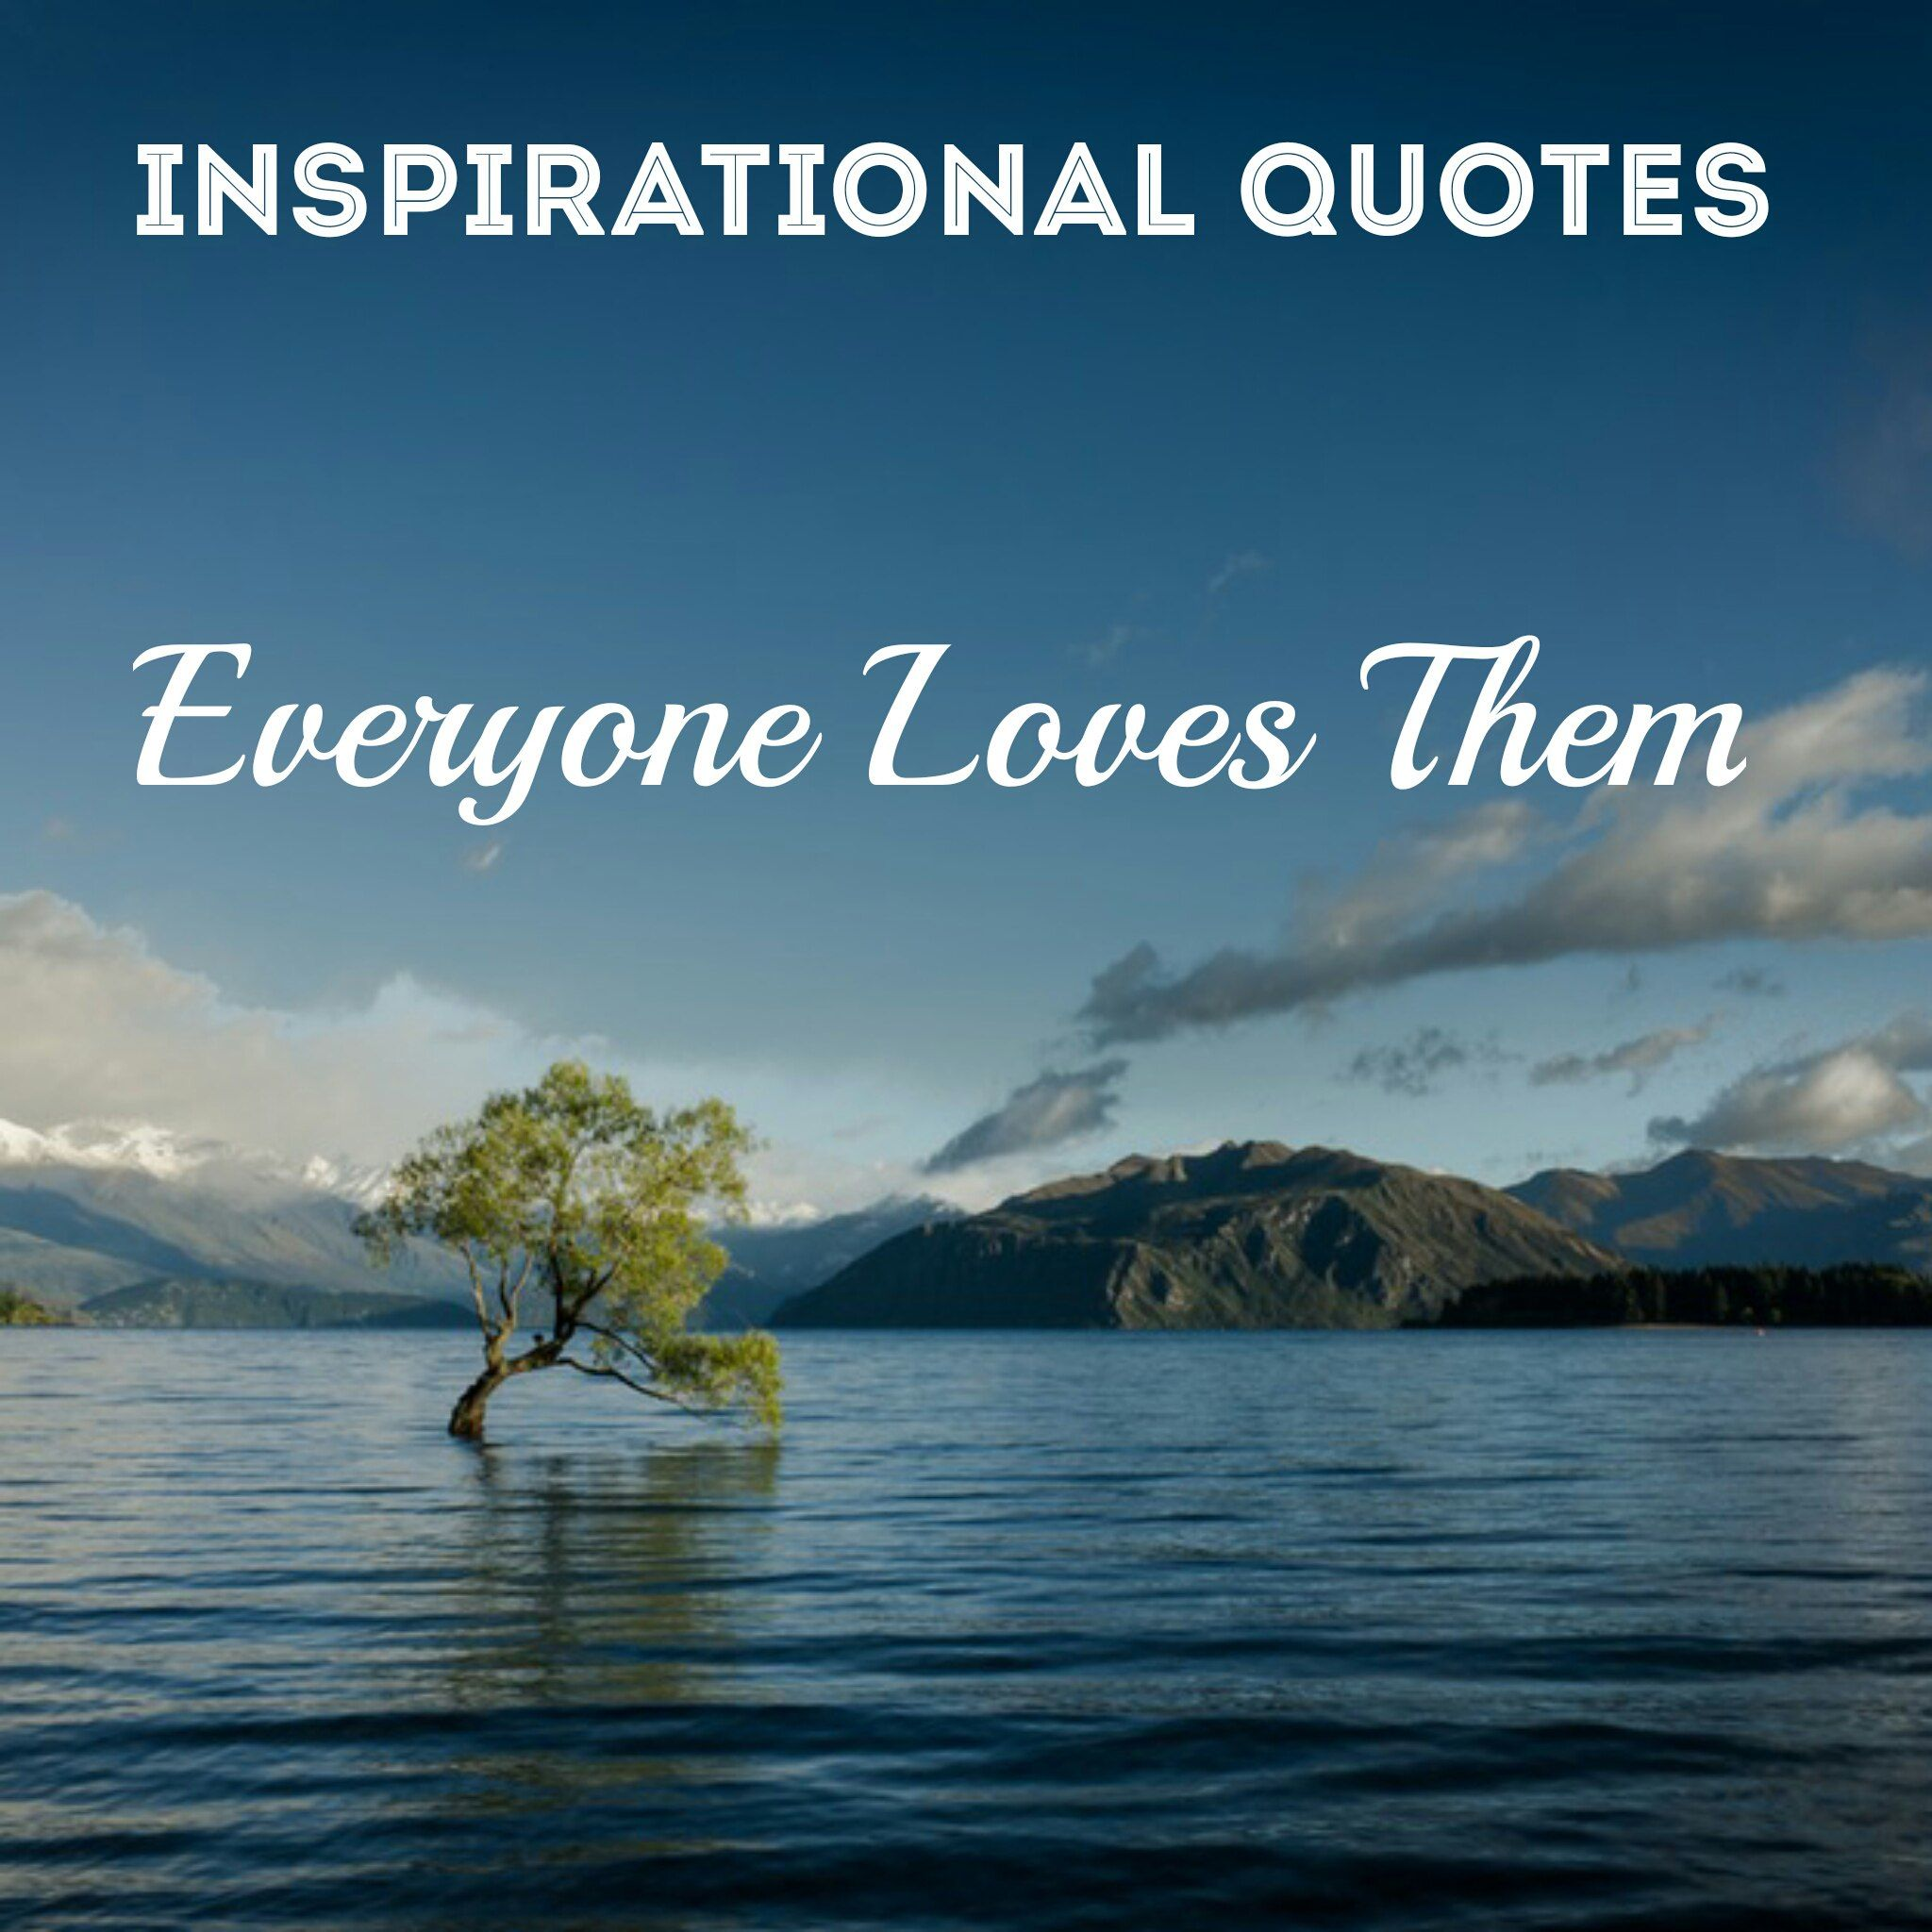 Best Inspirational Motivational Quotes: 154 Best Inspirational Quotes & Sayings Of All Time